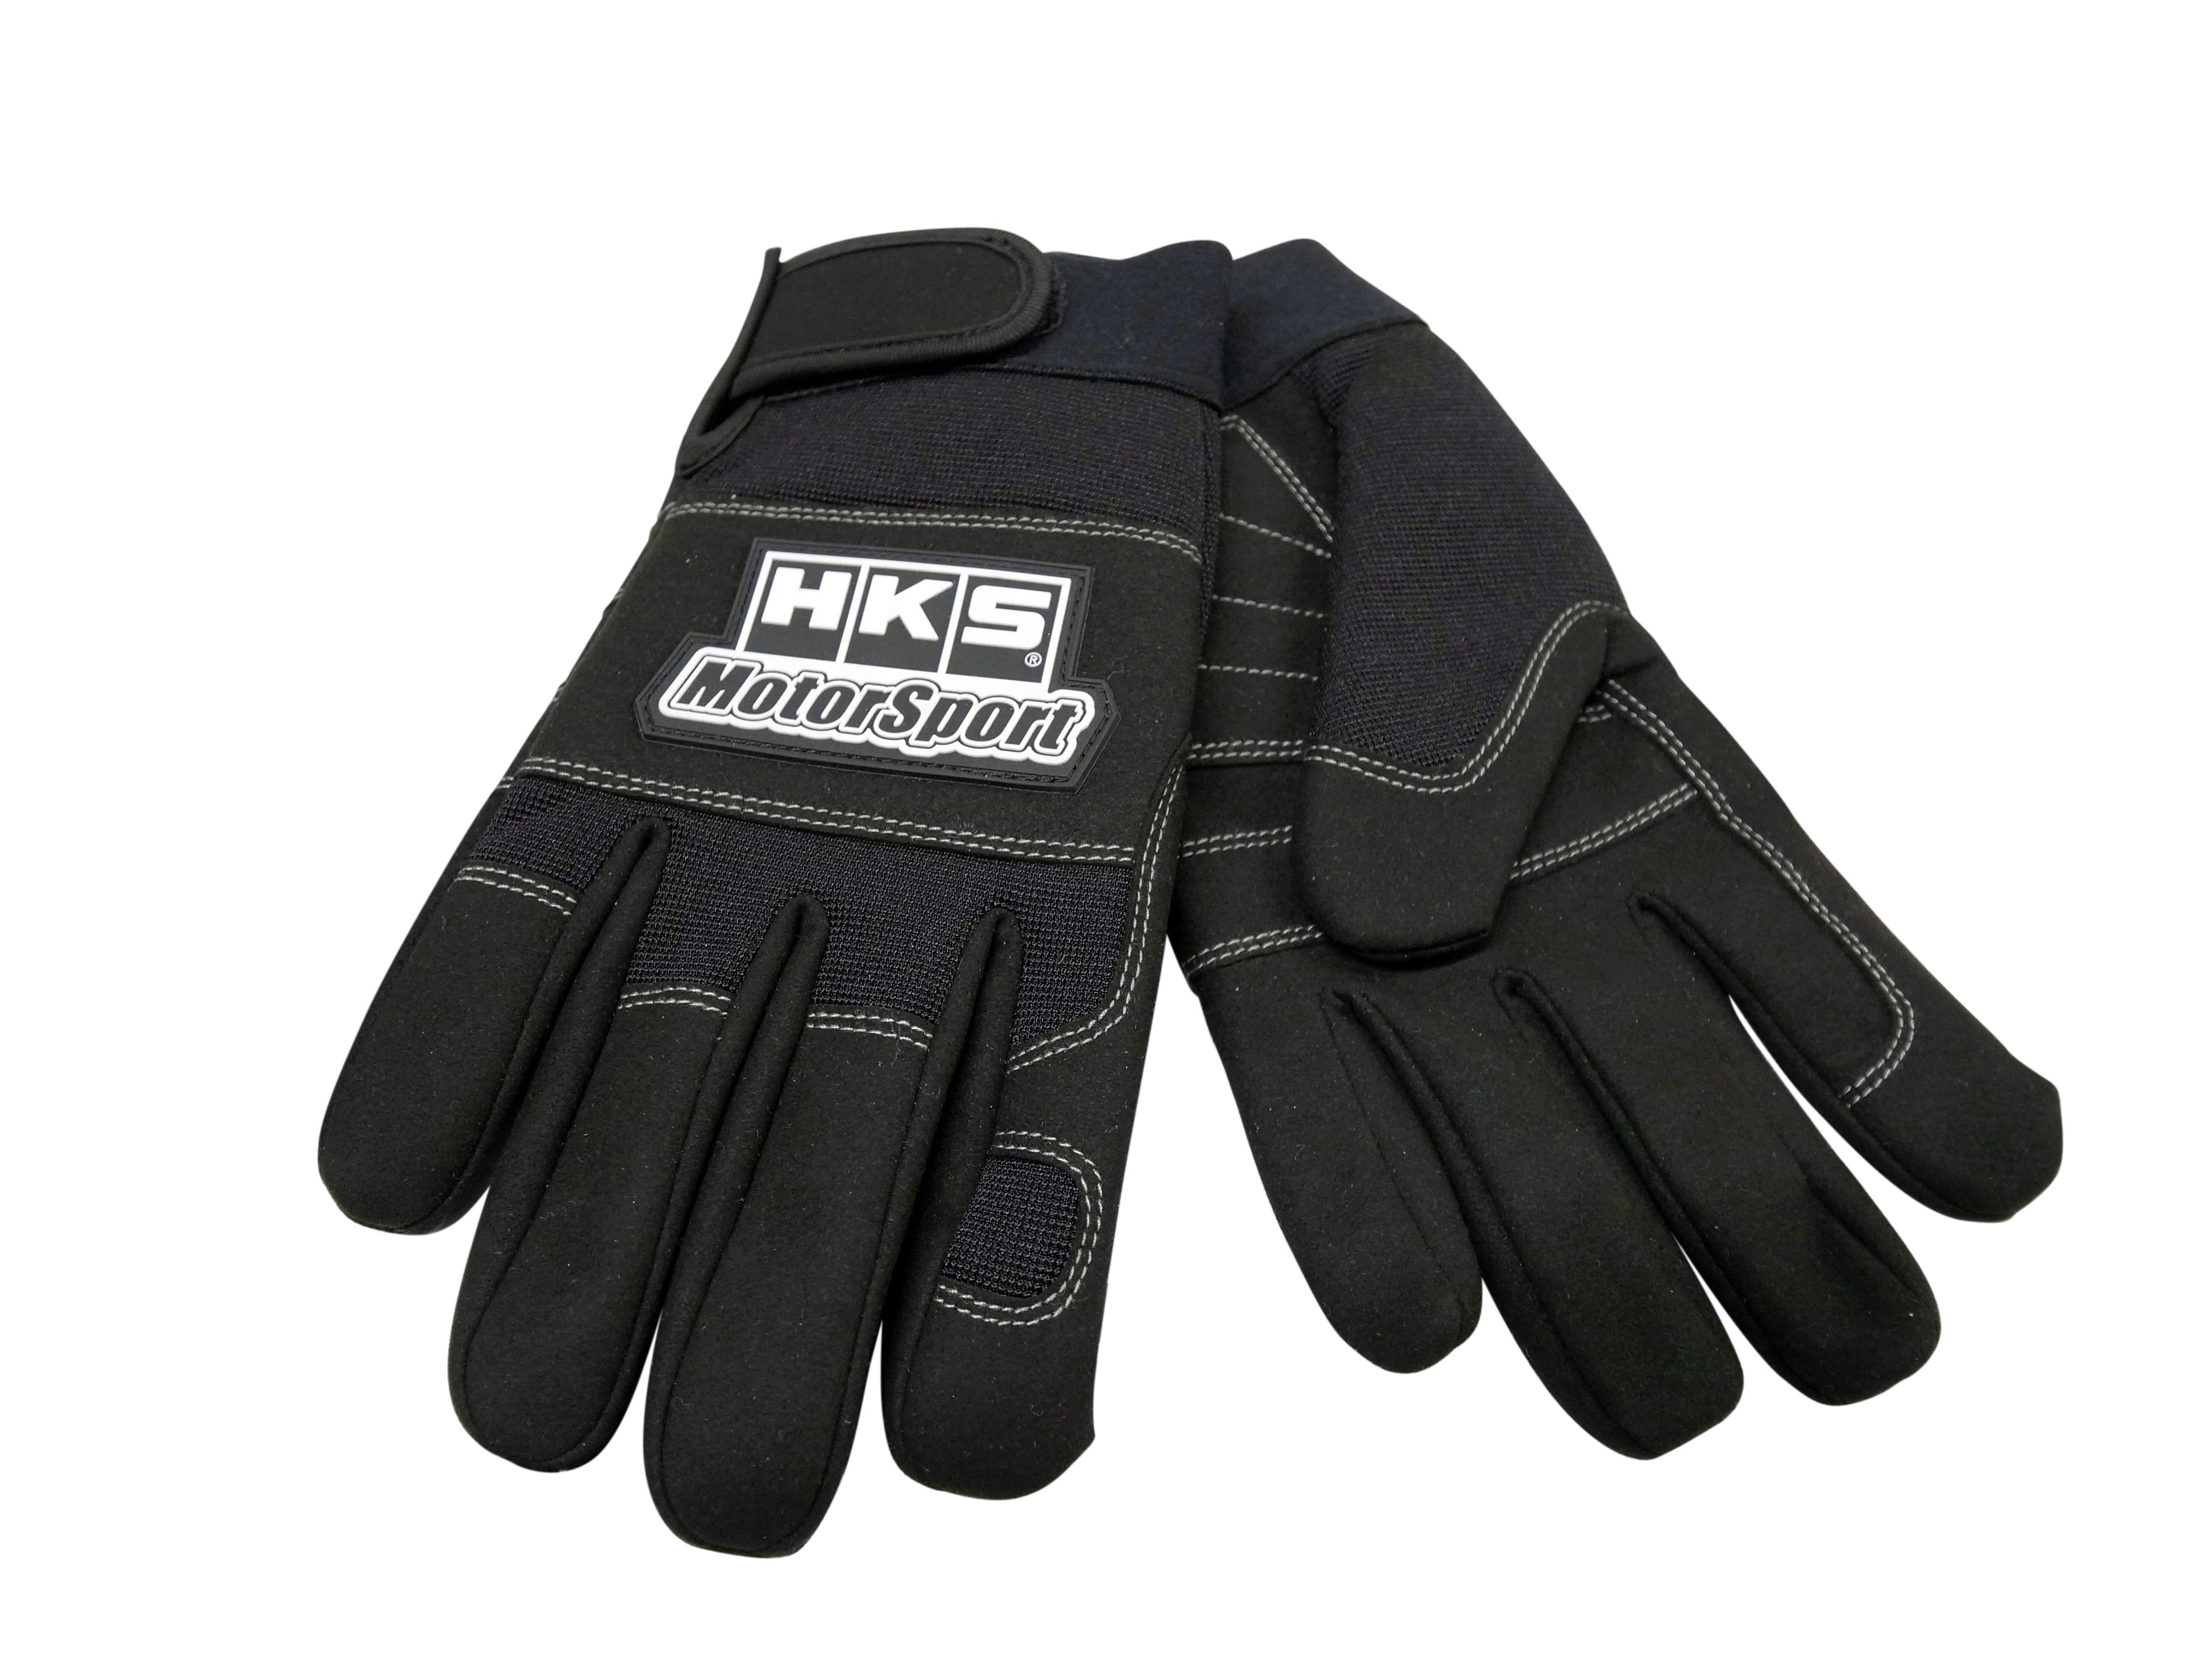 HKS Mechanic Gloves - Limited Edition!